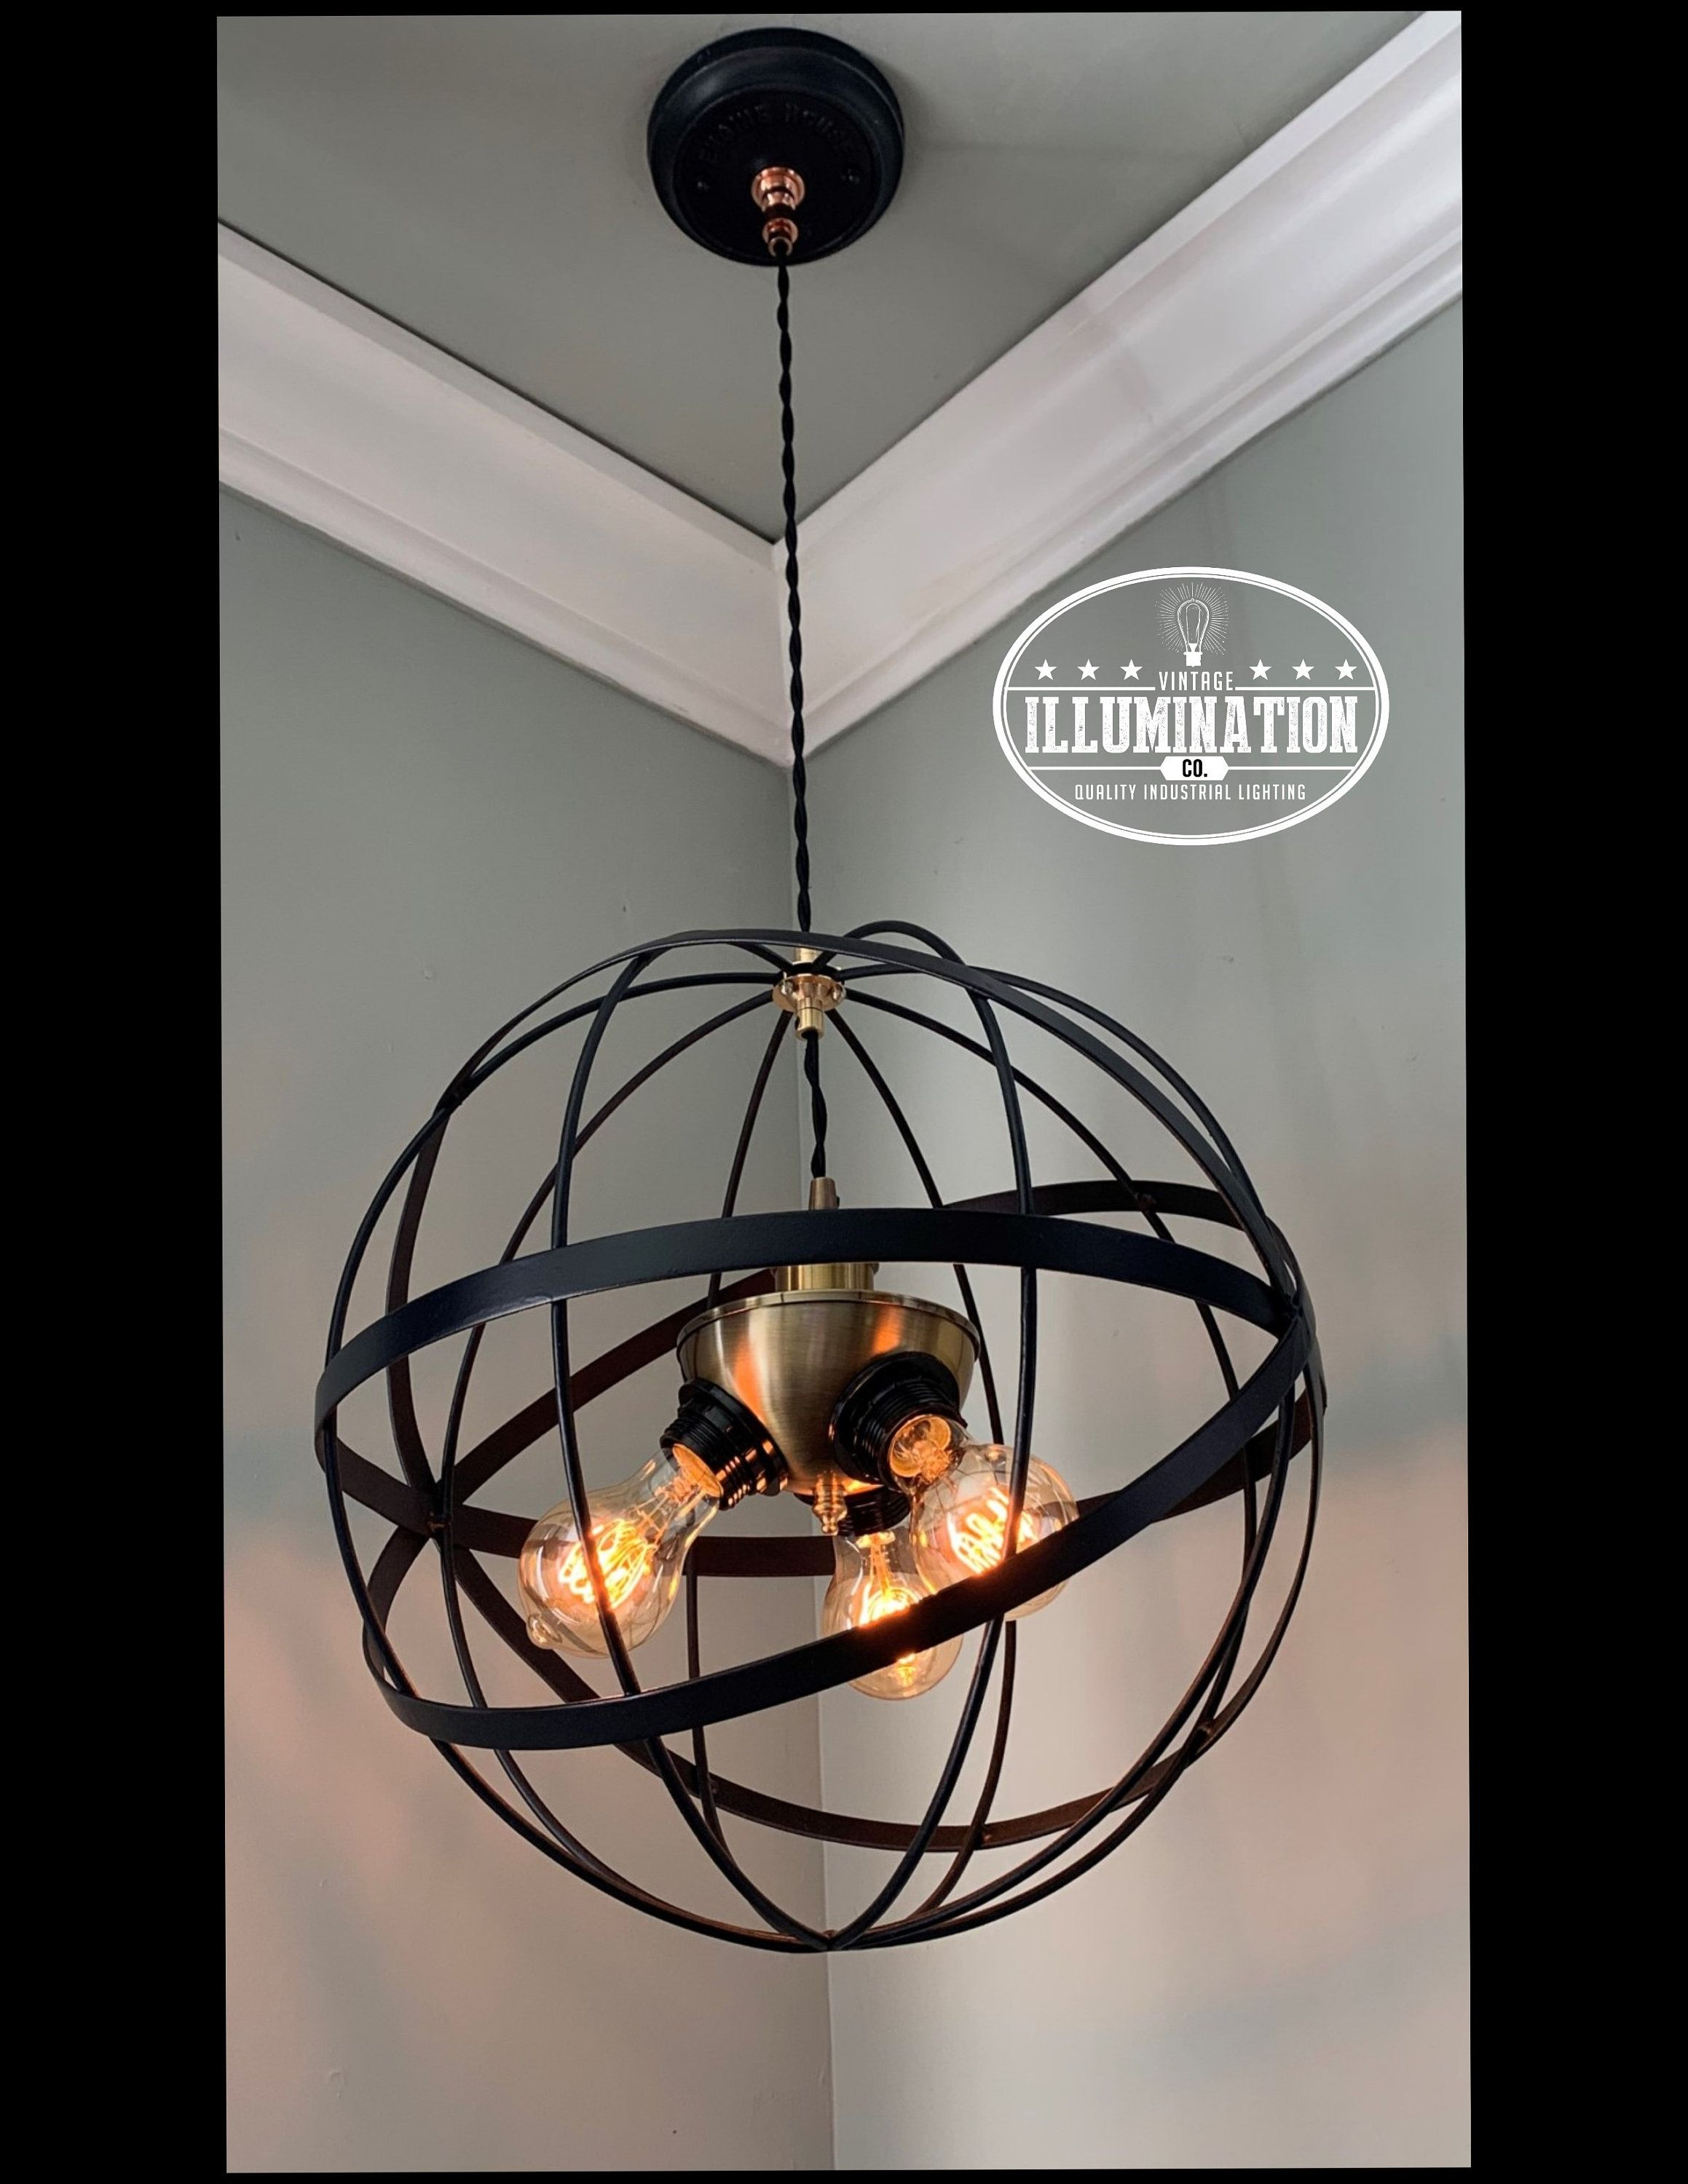 Metal Sphere 3 Bulb Chandelier 15 5 Diameter 3ft From Celing